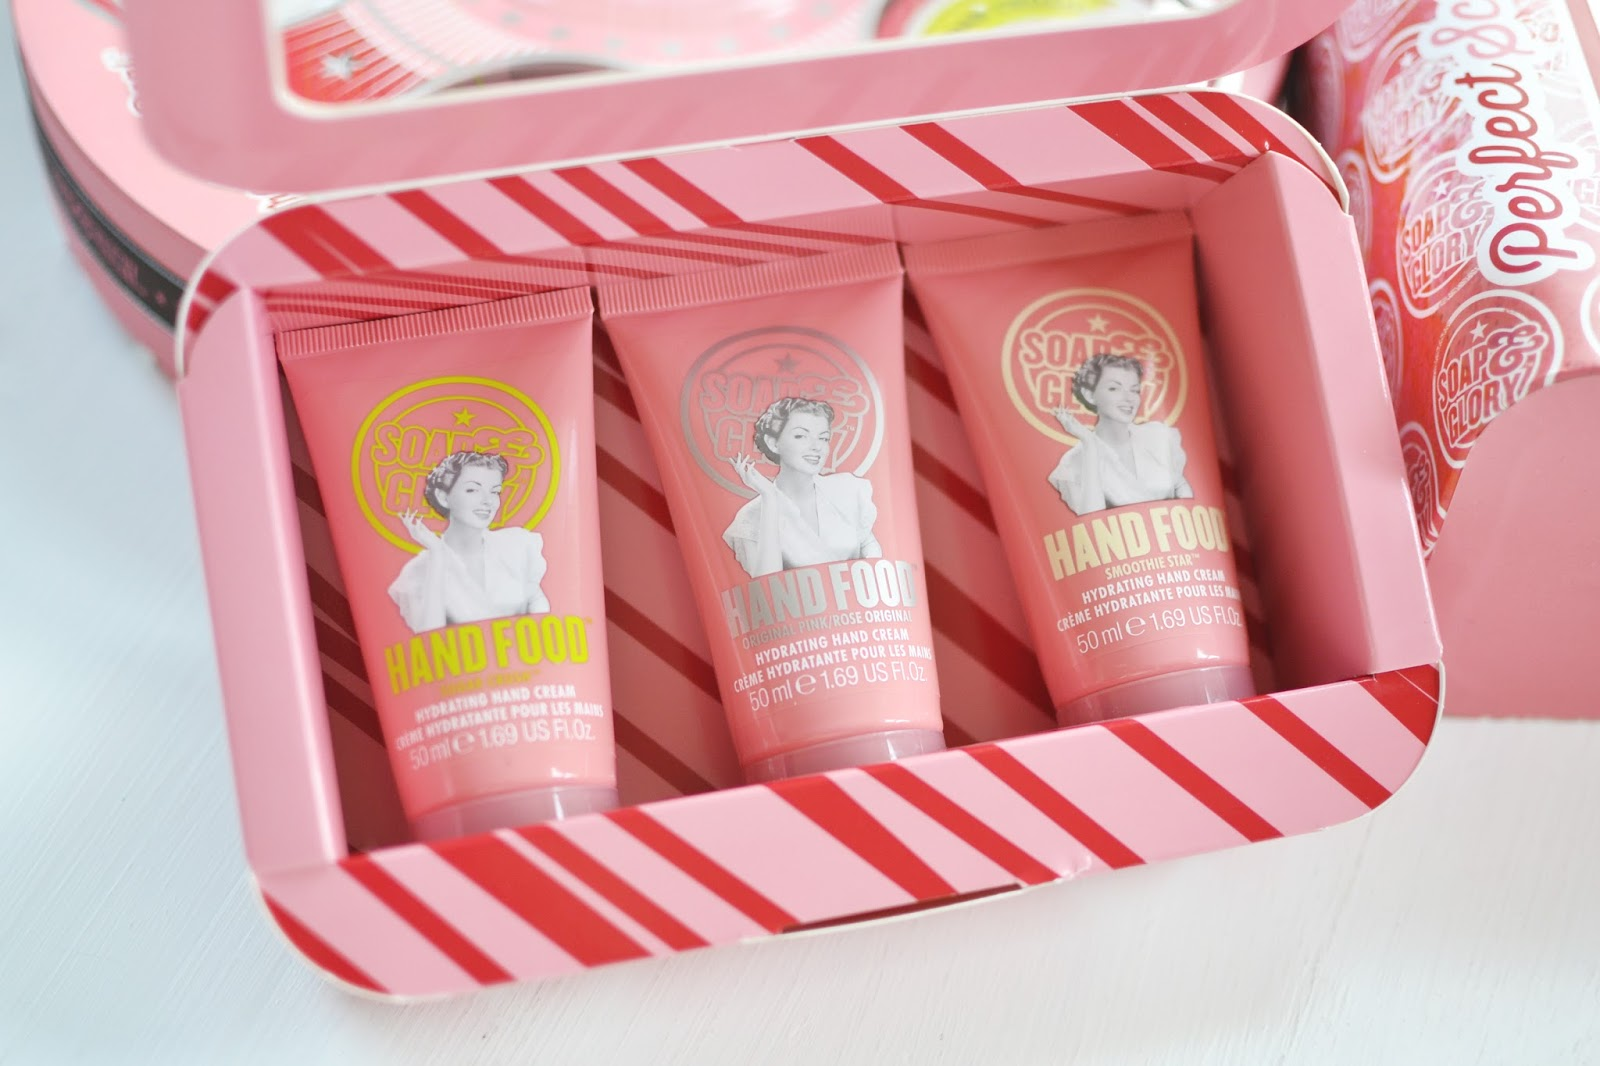 SOAP & GLORY christmas gift set